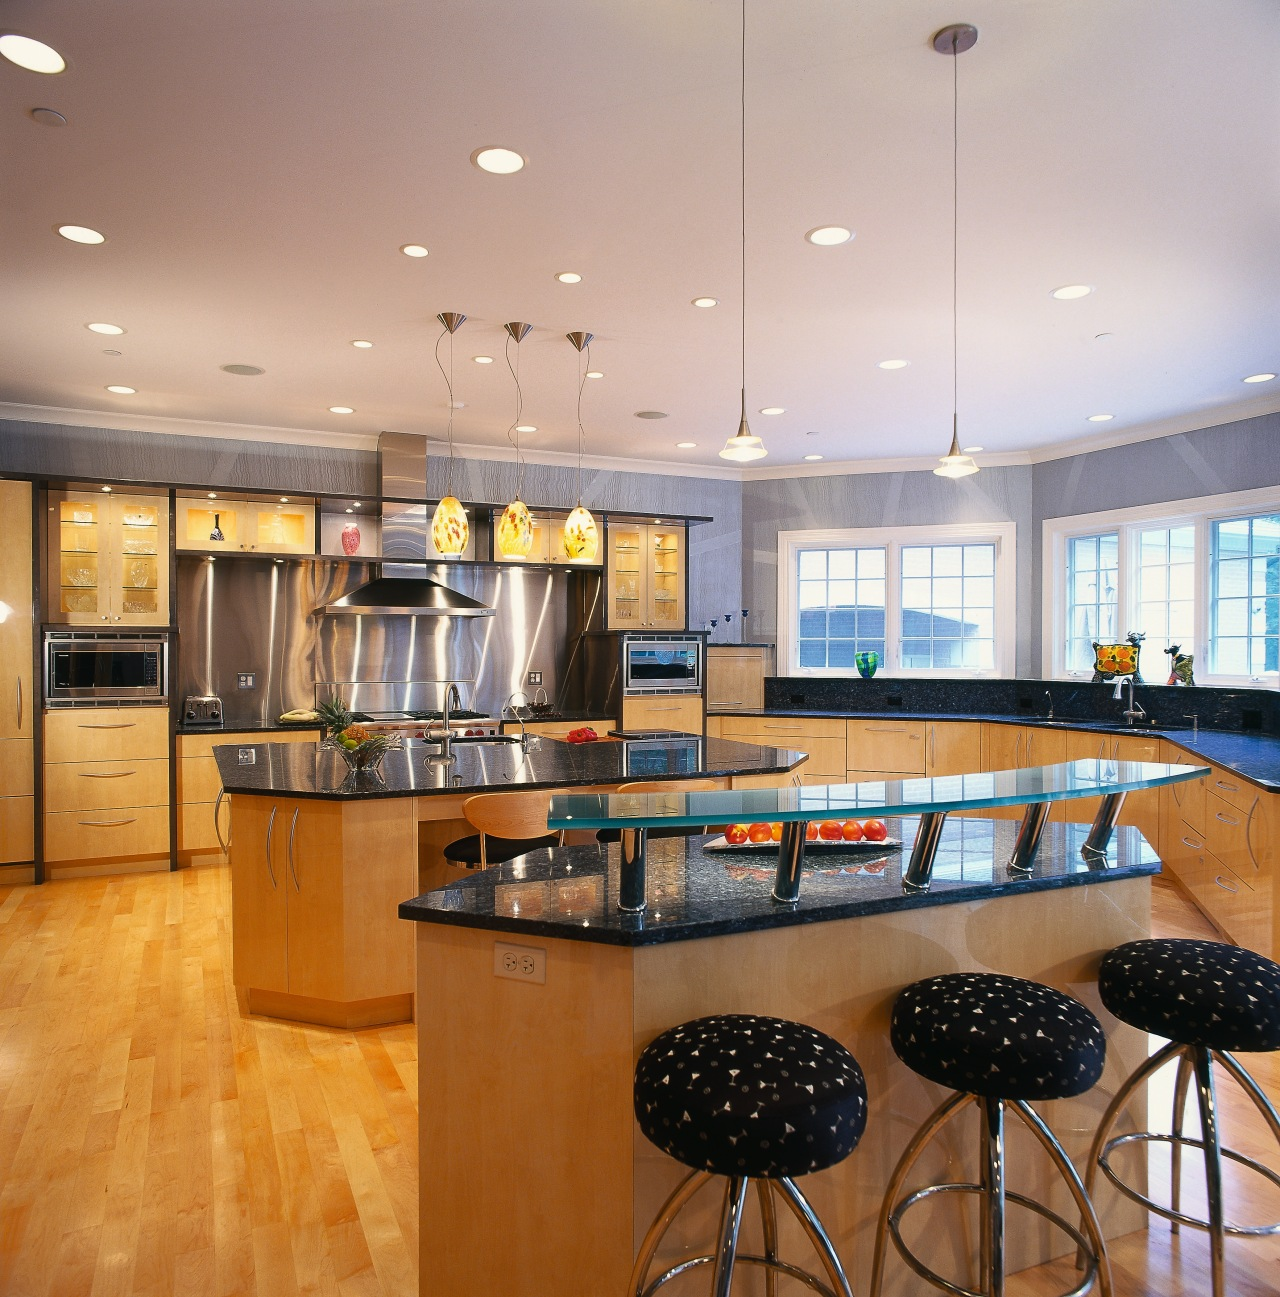 Broad view of the home's kitchen area ceiling, countertop, interior design, kitchen, real estate, room, gray